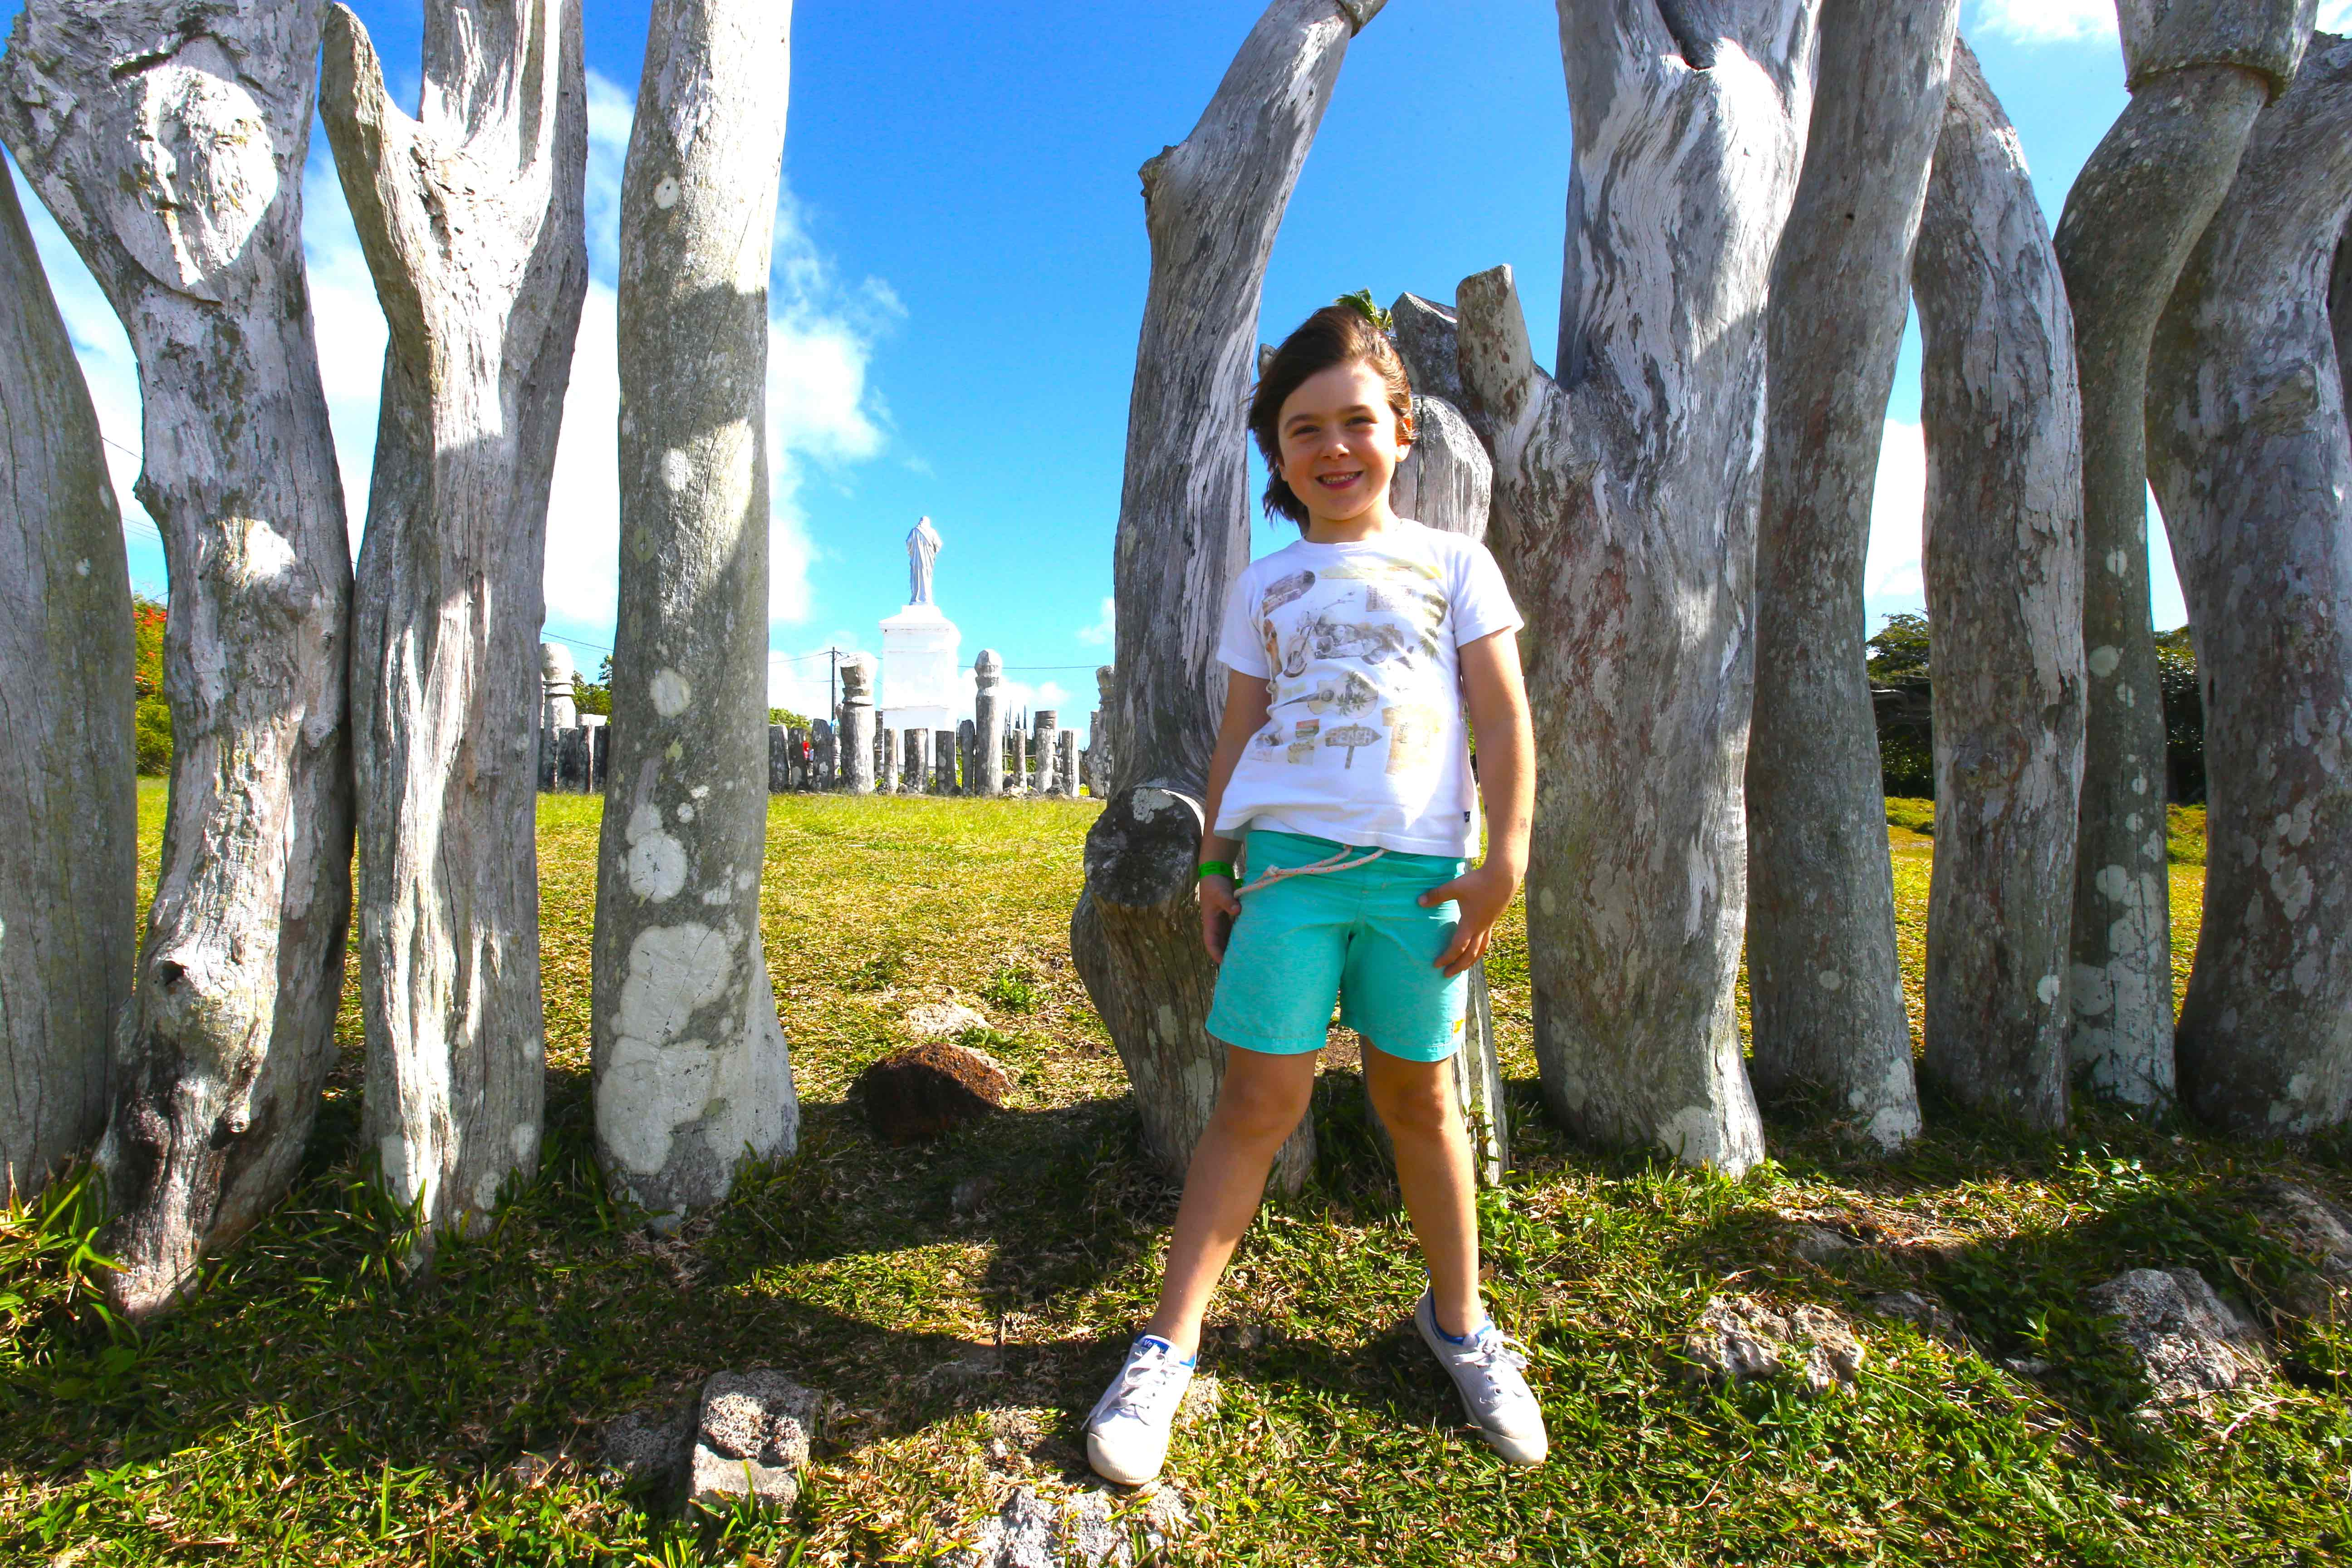 isle-of-pines-discover-tour-new-caledonia-travelling-with-kids-4